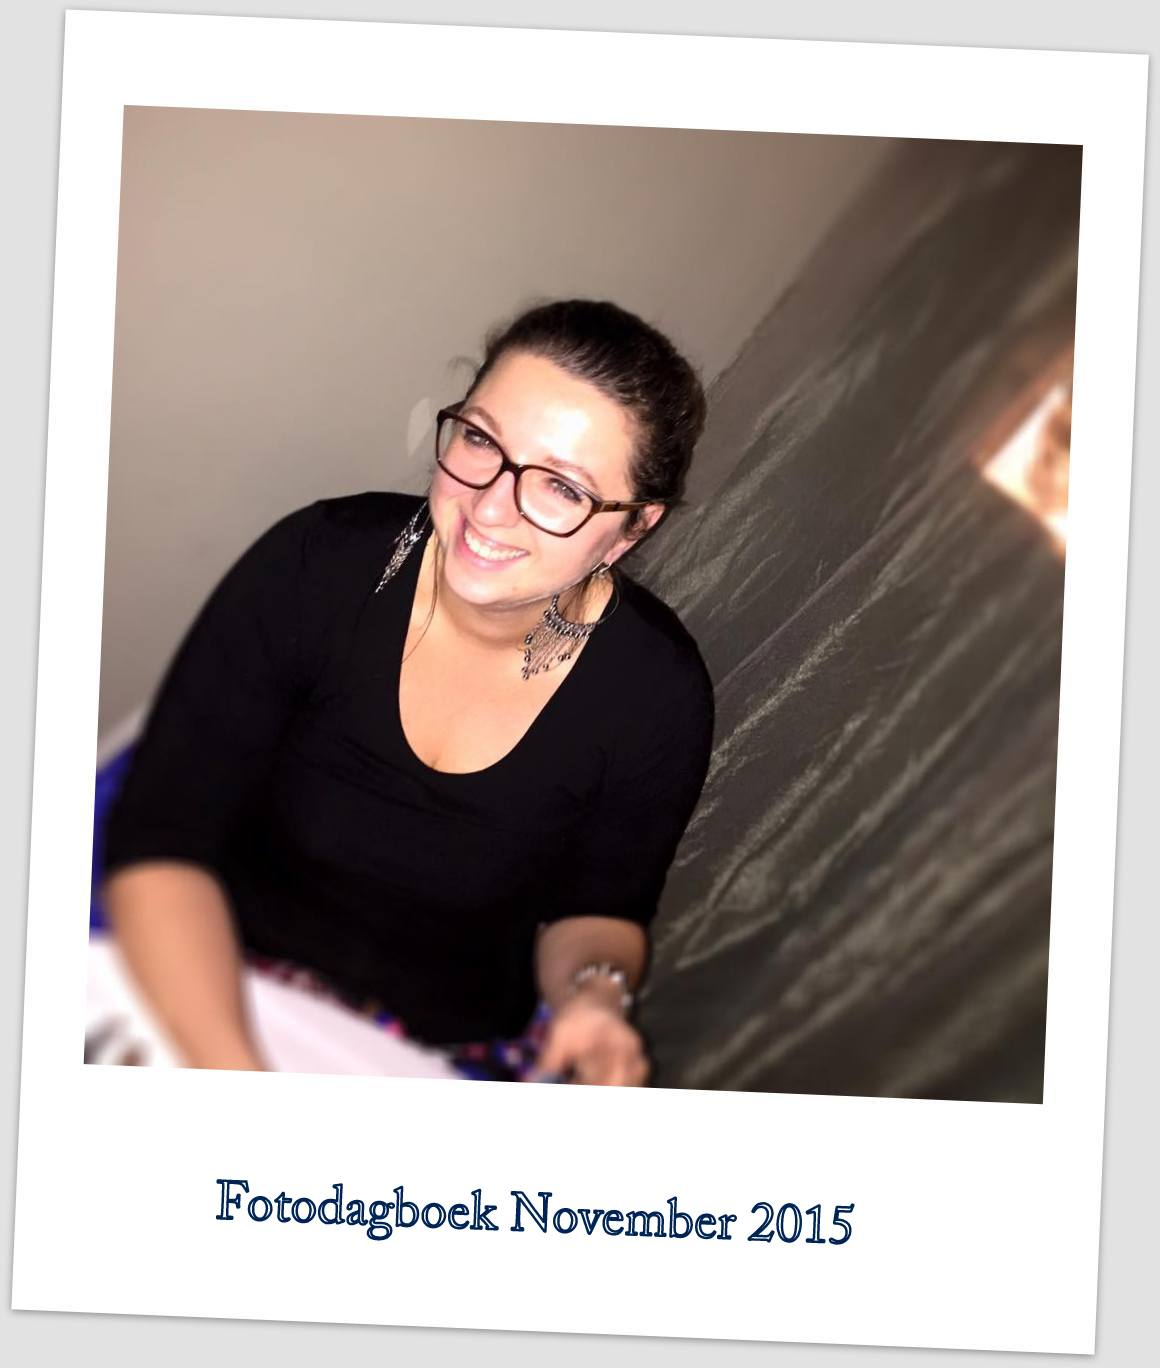 Fotodagboek November 2015